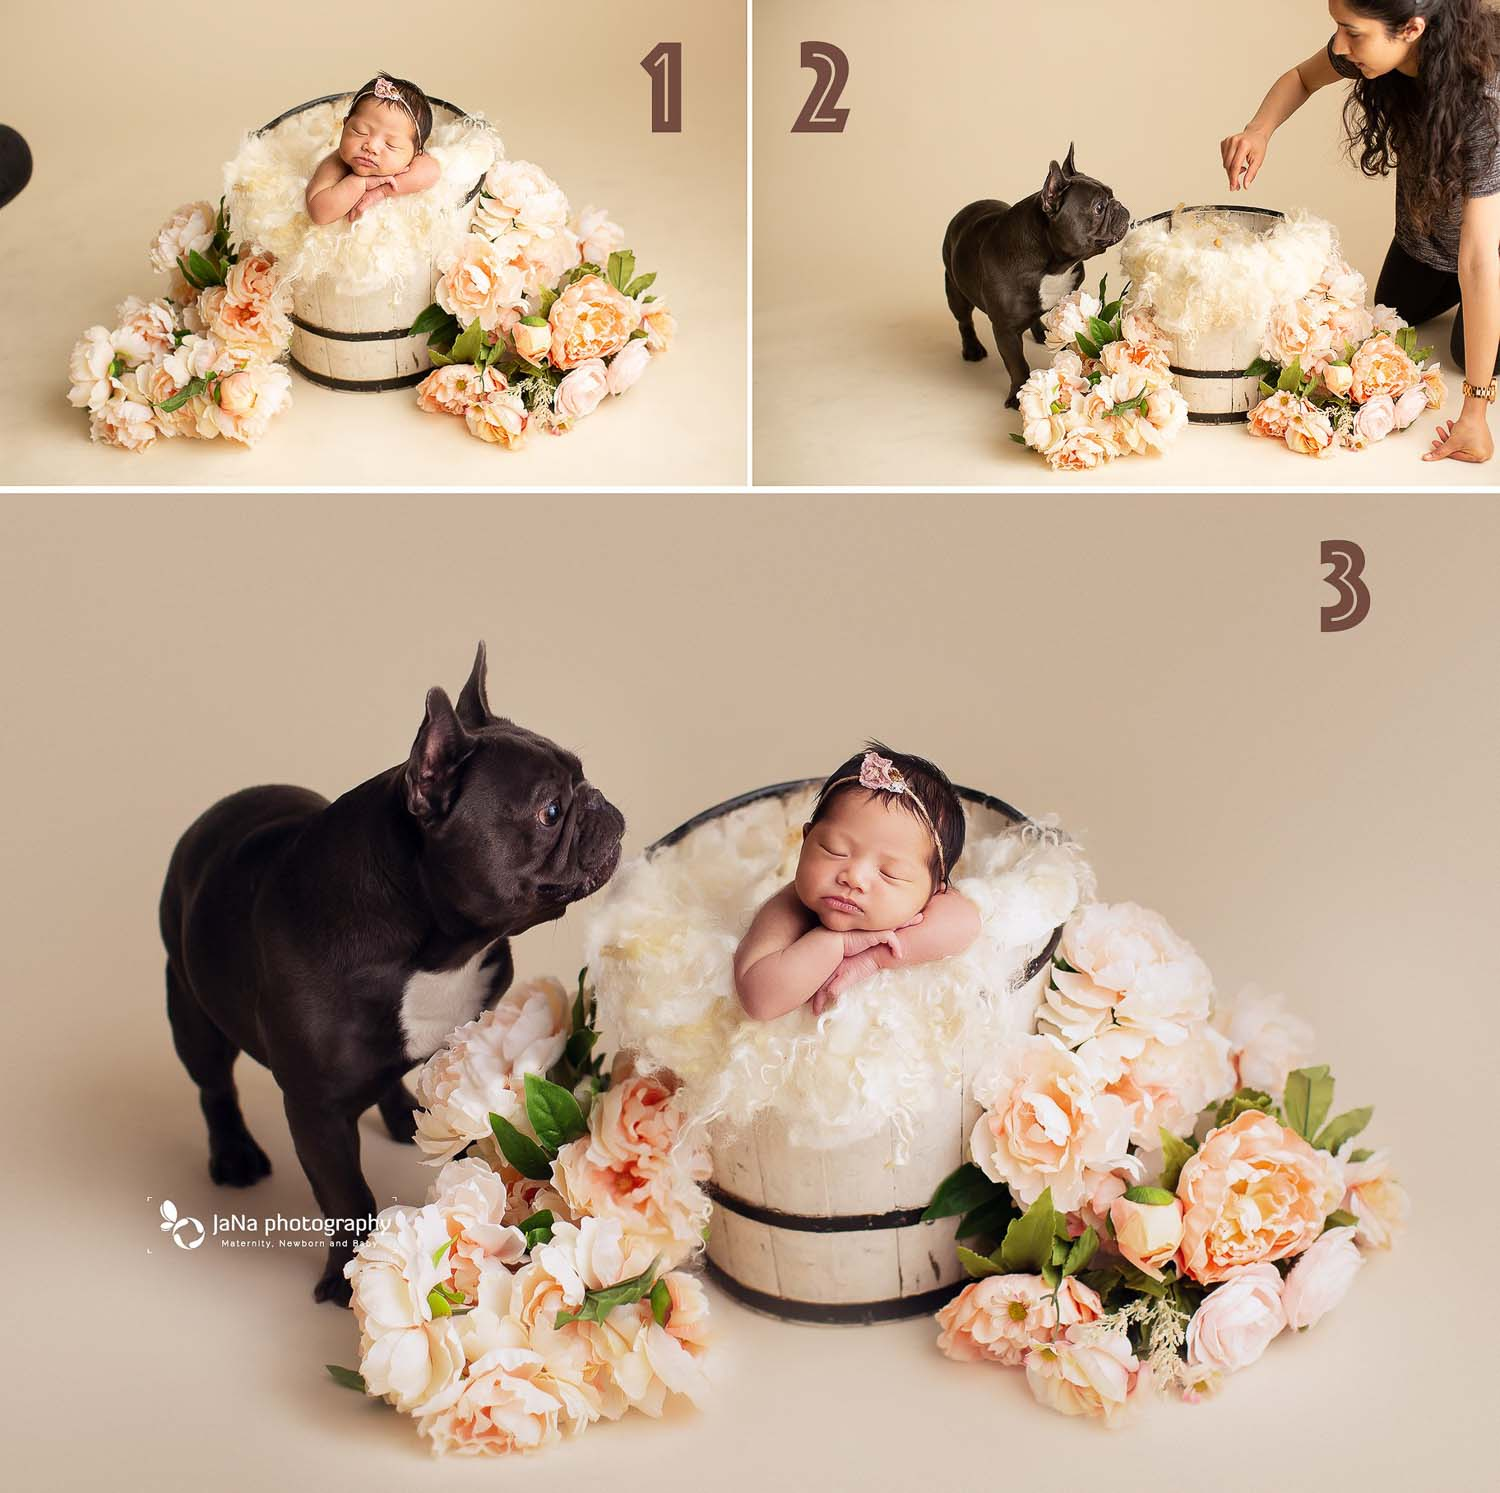 newborn baby girl posing in a bucket close to her dog | safety